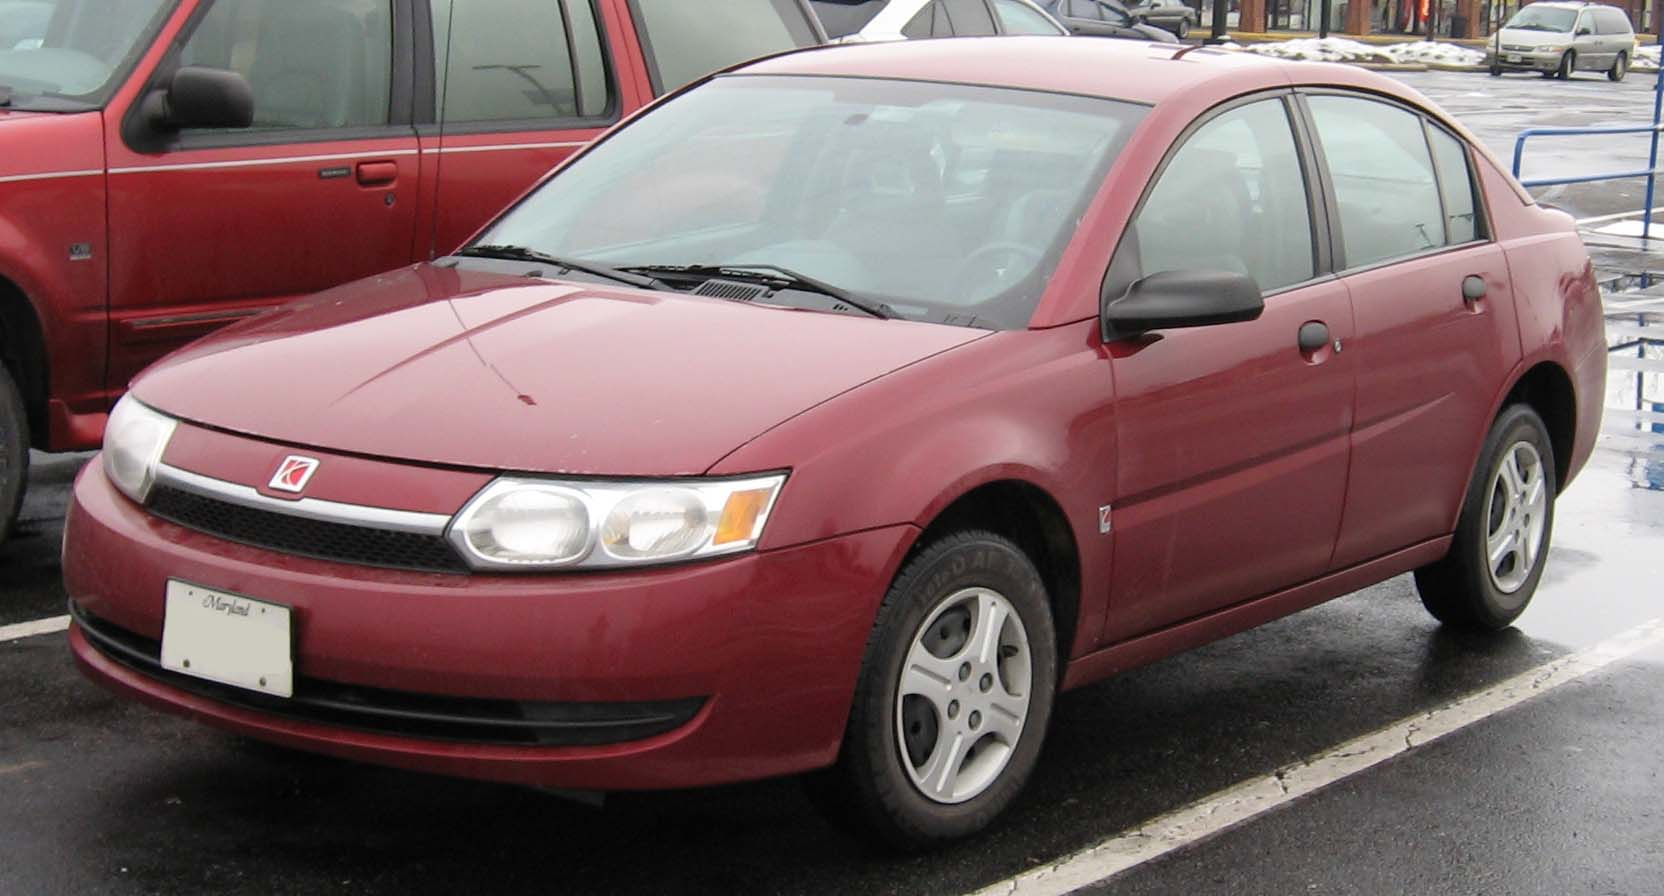 Saturn saturn 2004 : File:03-04 Saturn Ion sedan.jpg - Wikimedia Commons